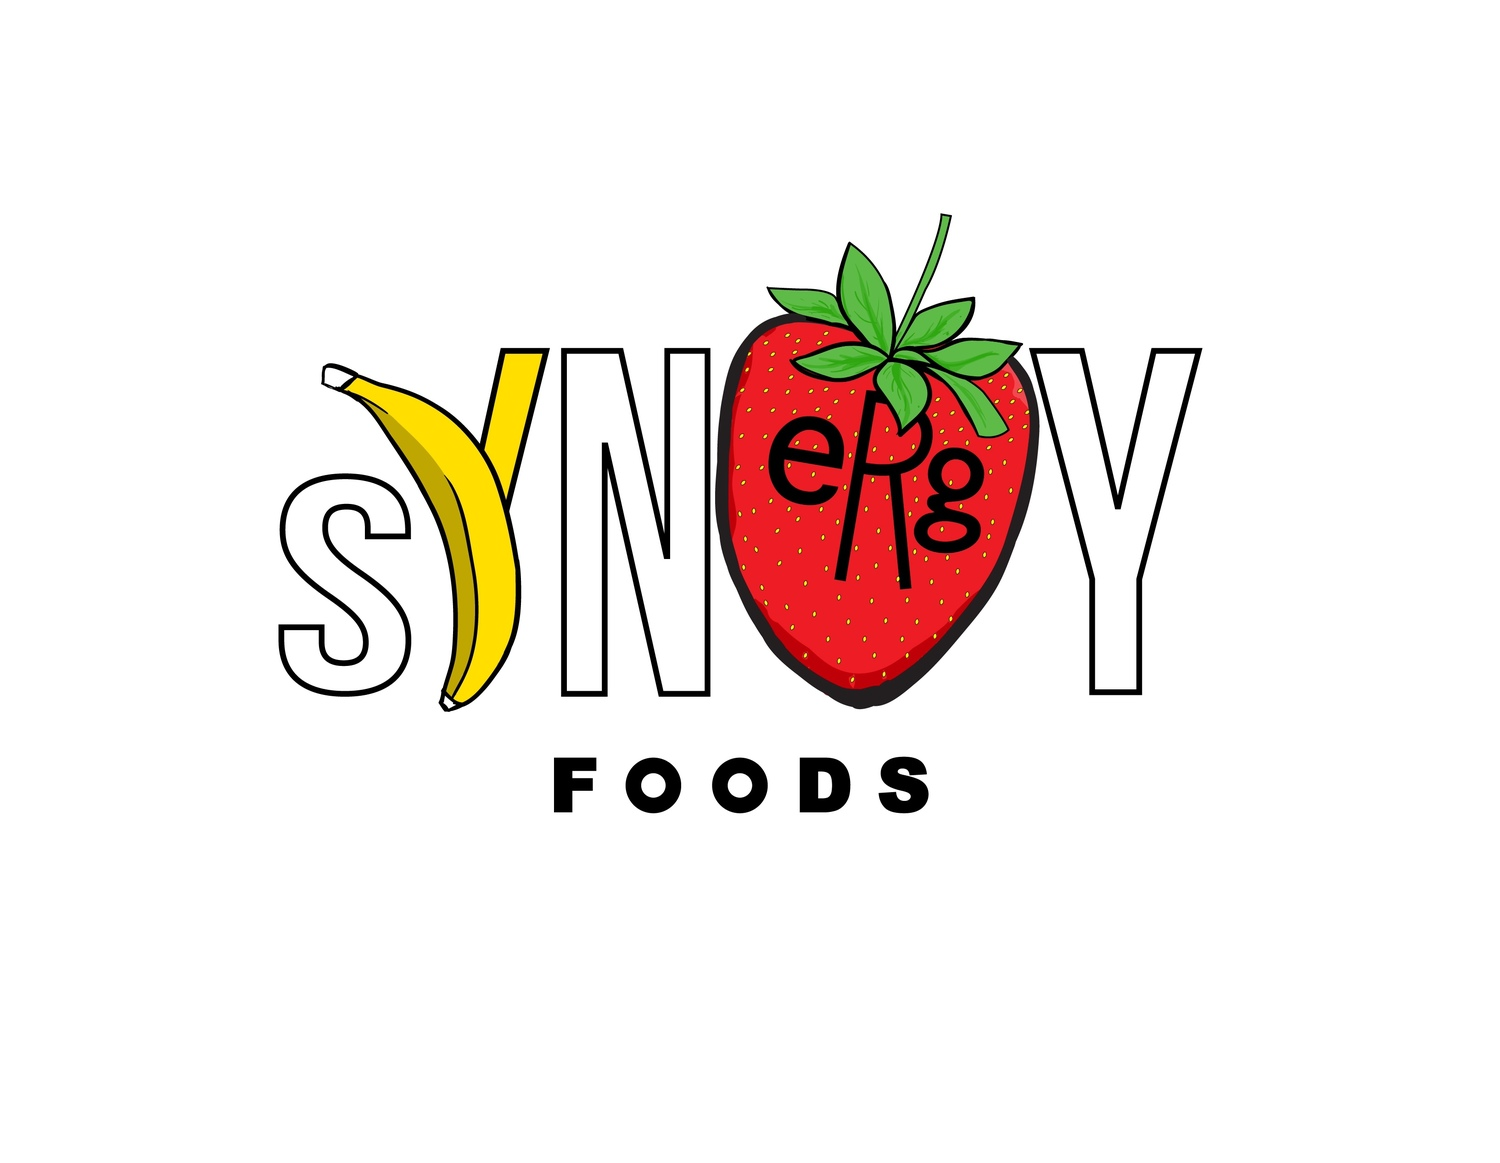 Synergy Foods